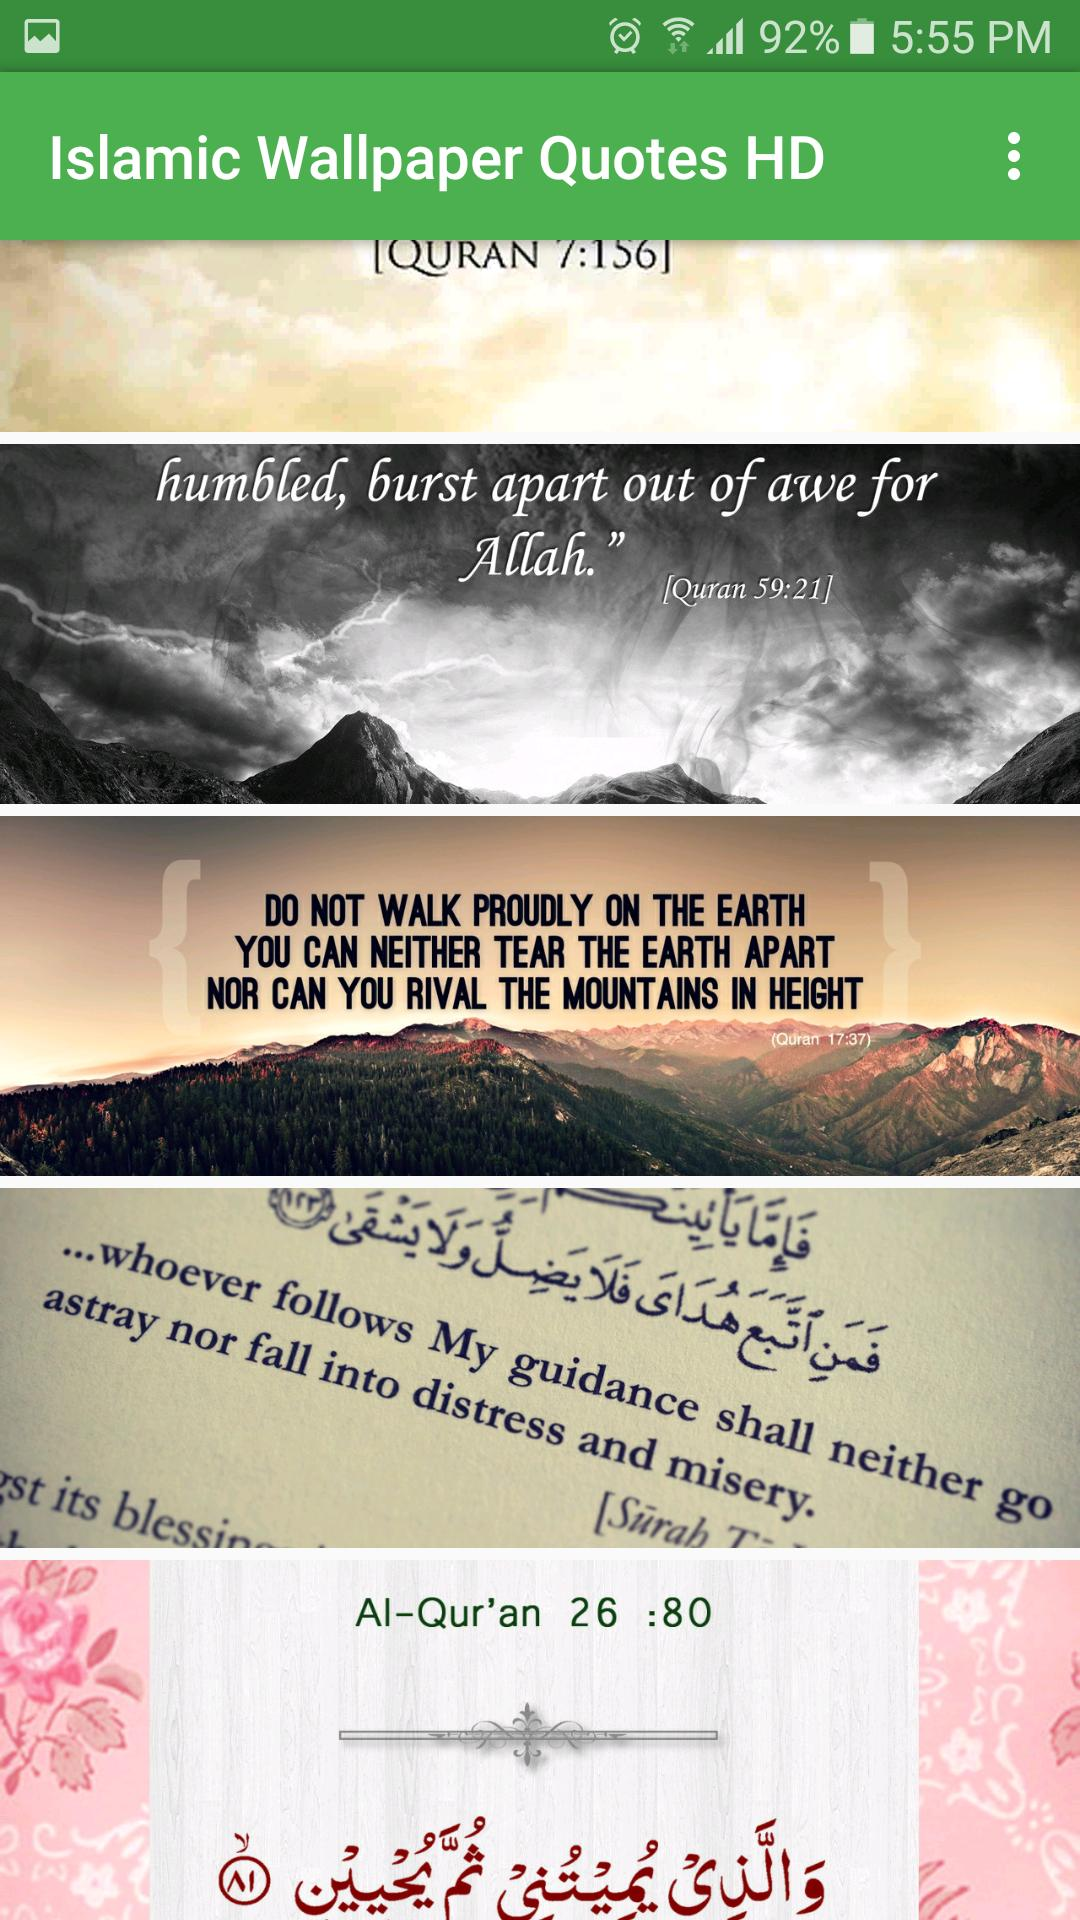 Islamic Wallpaper Quotes Hd For Android Apk Download